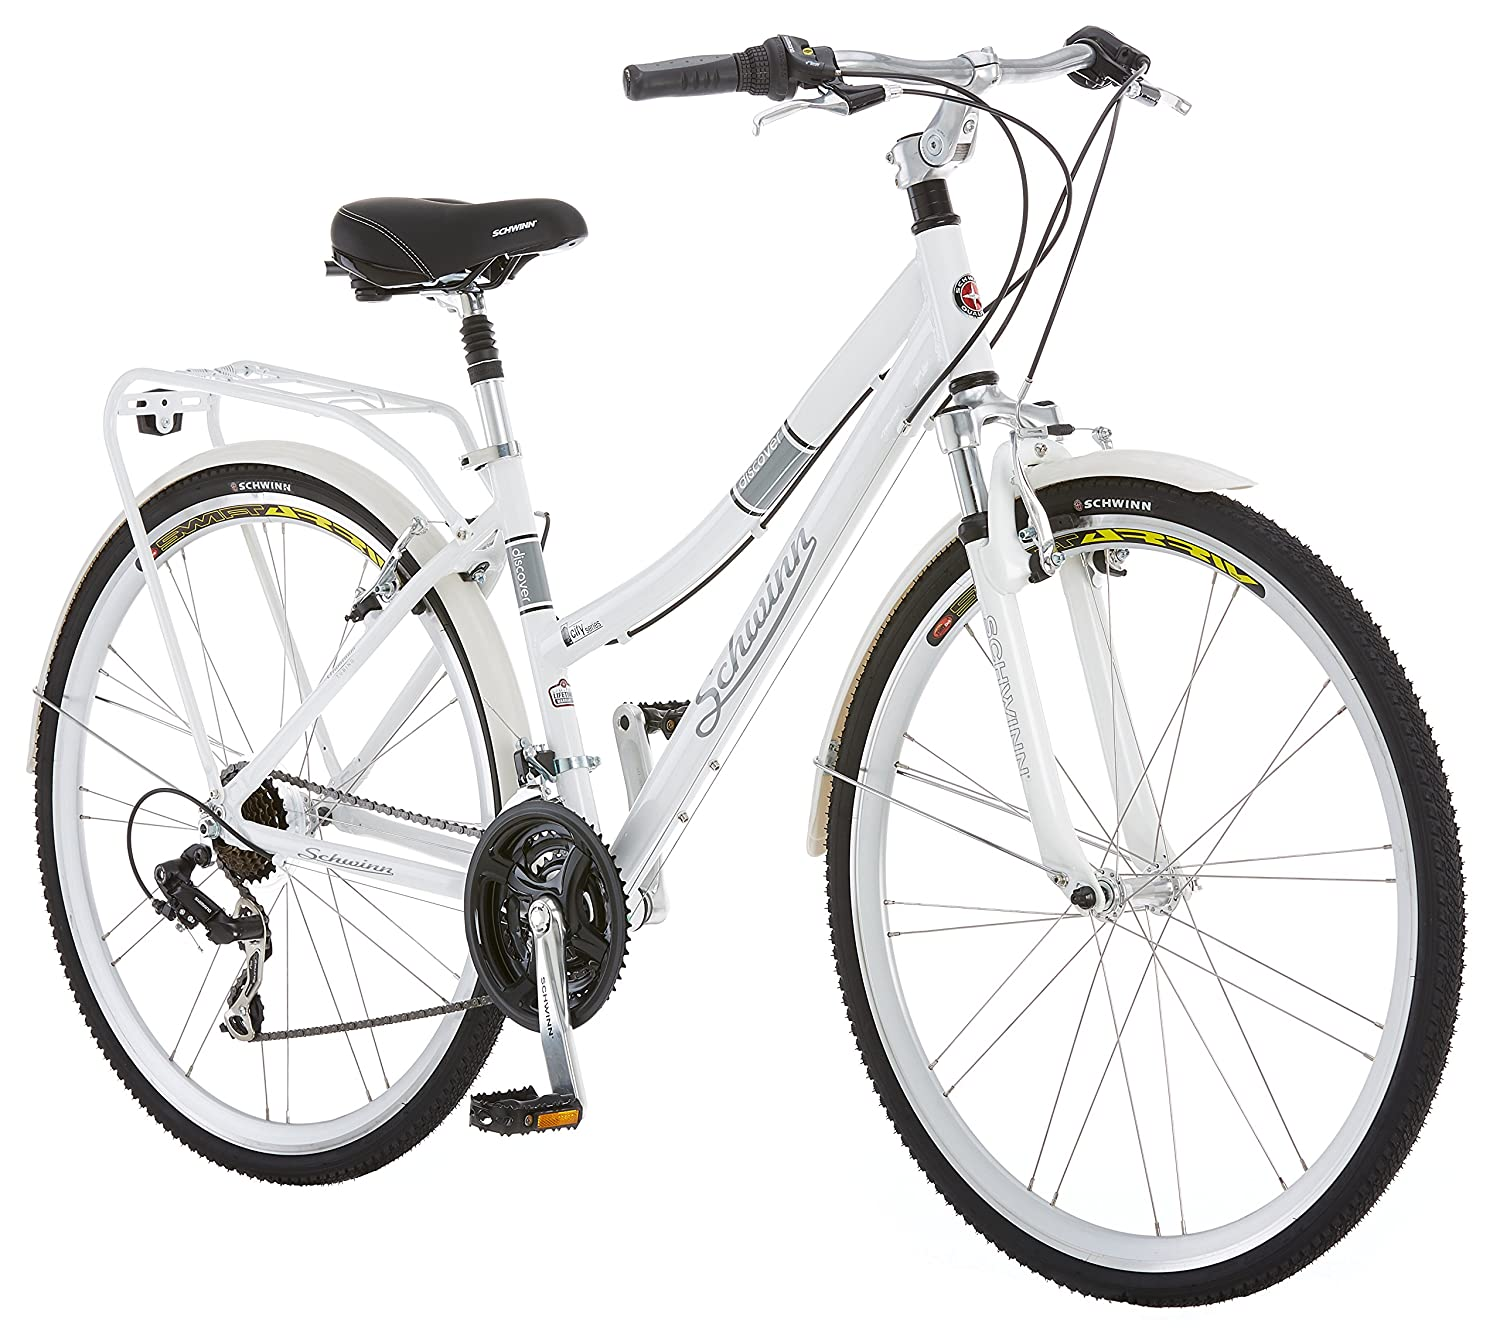 Amazon.com : Schwinn Discover Hybrid Bicycle, 700C, 28-Inch Wheels : Hybrid  Bicycles : Industrial & Scientific